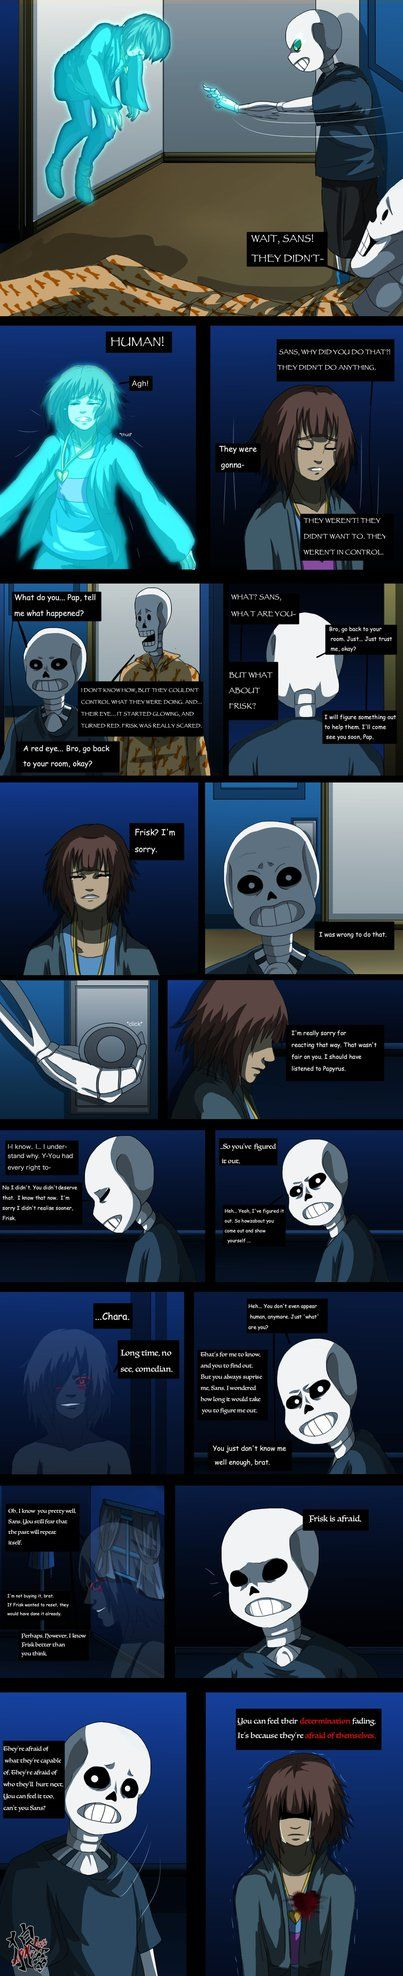 Did this comic cuz it sounded fun ^^ Dustale is an Undertale AU where Sans kills everyone to gain LV to kill the human. Read more here: www.reddit.com/r/Undertale/com… Dustale bel...